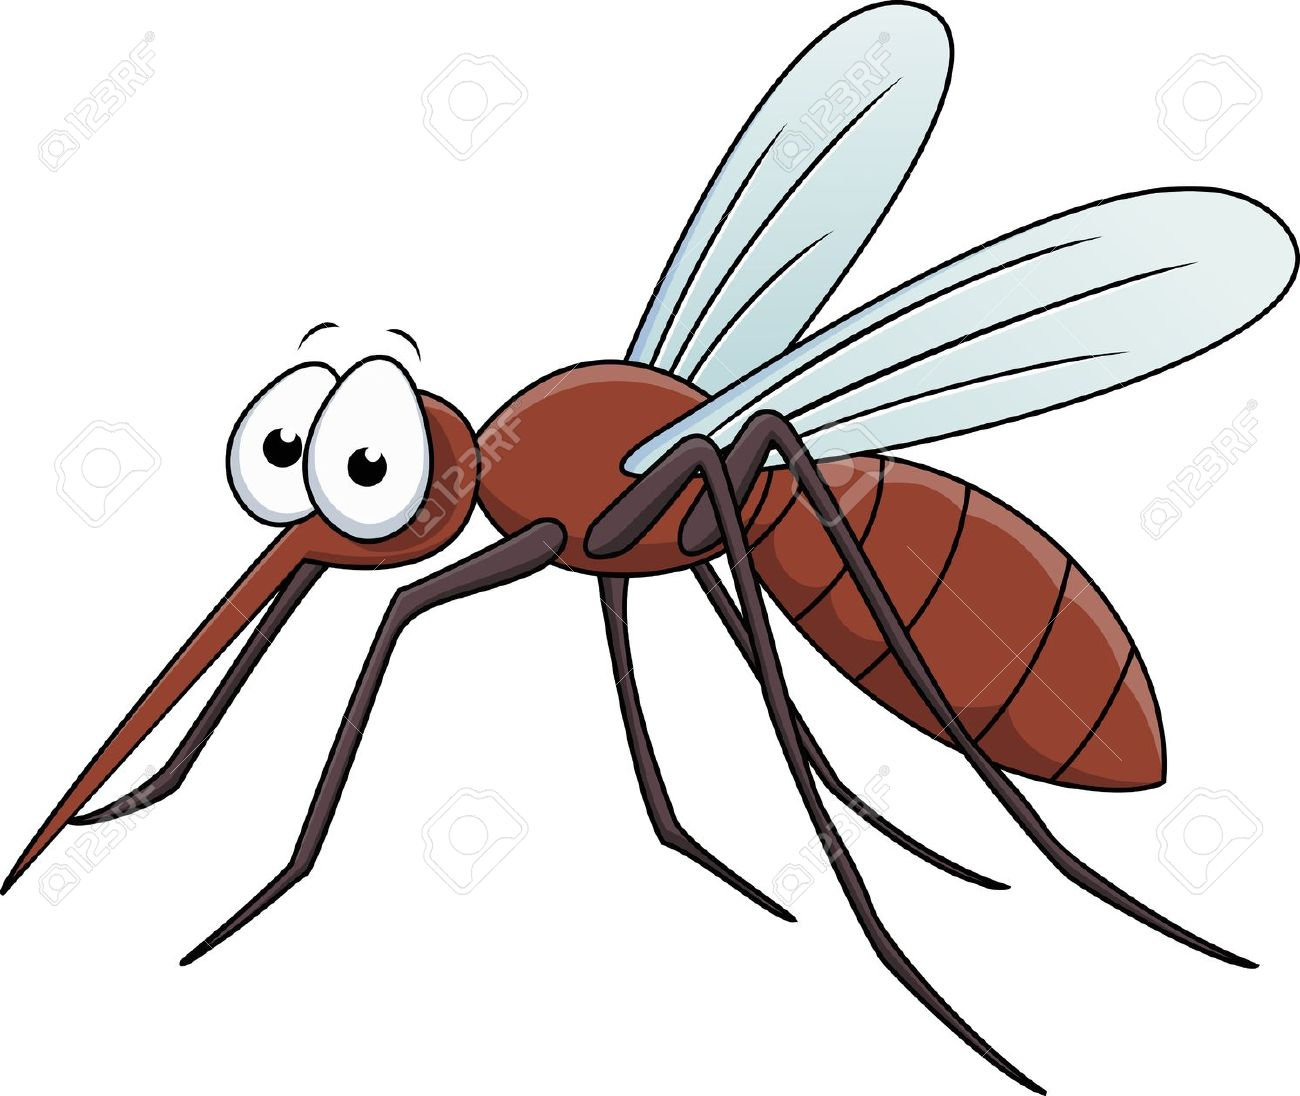 Clipart Of Mosquito.